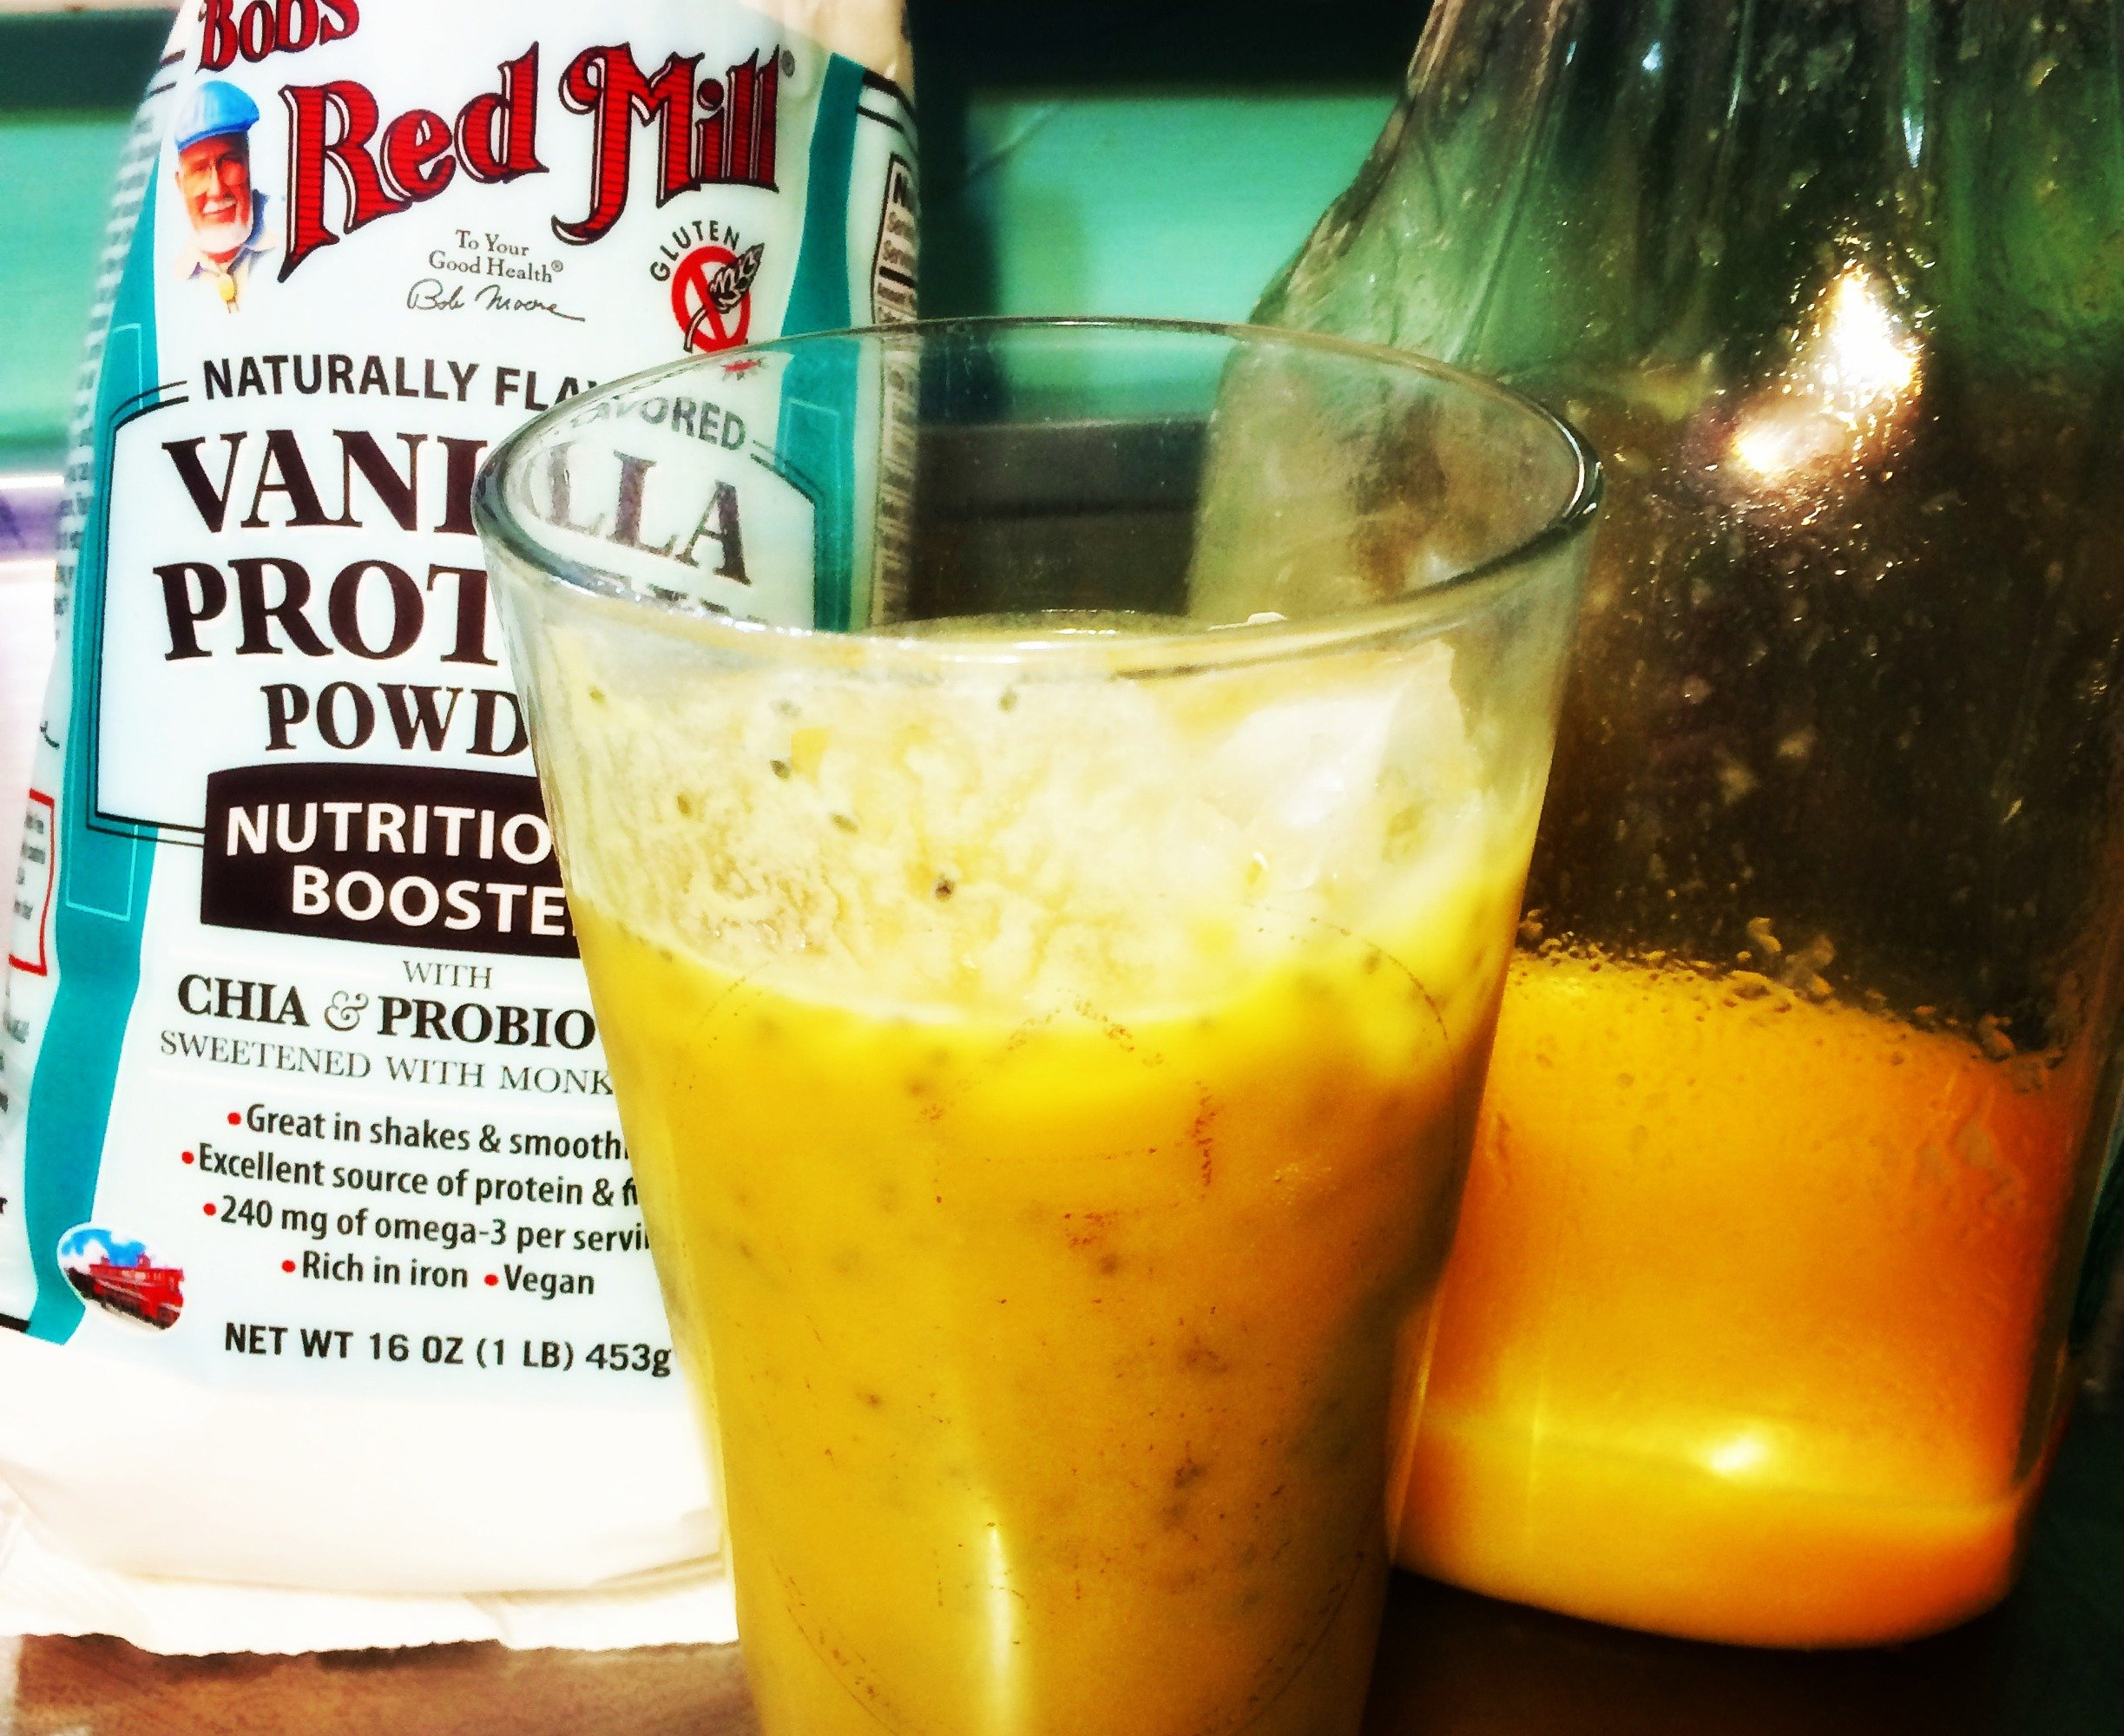 Bob's Red Mill dreamsicle